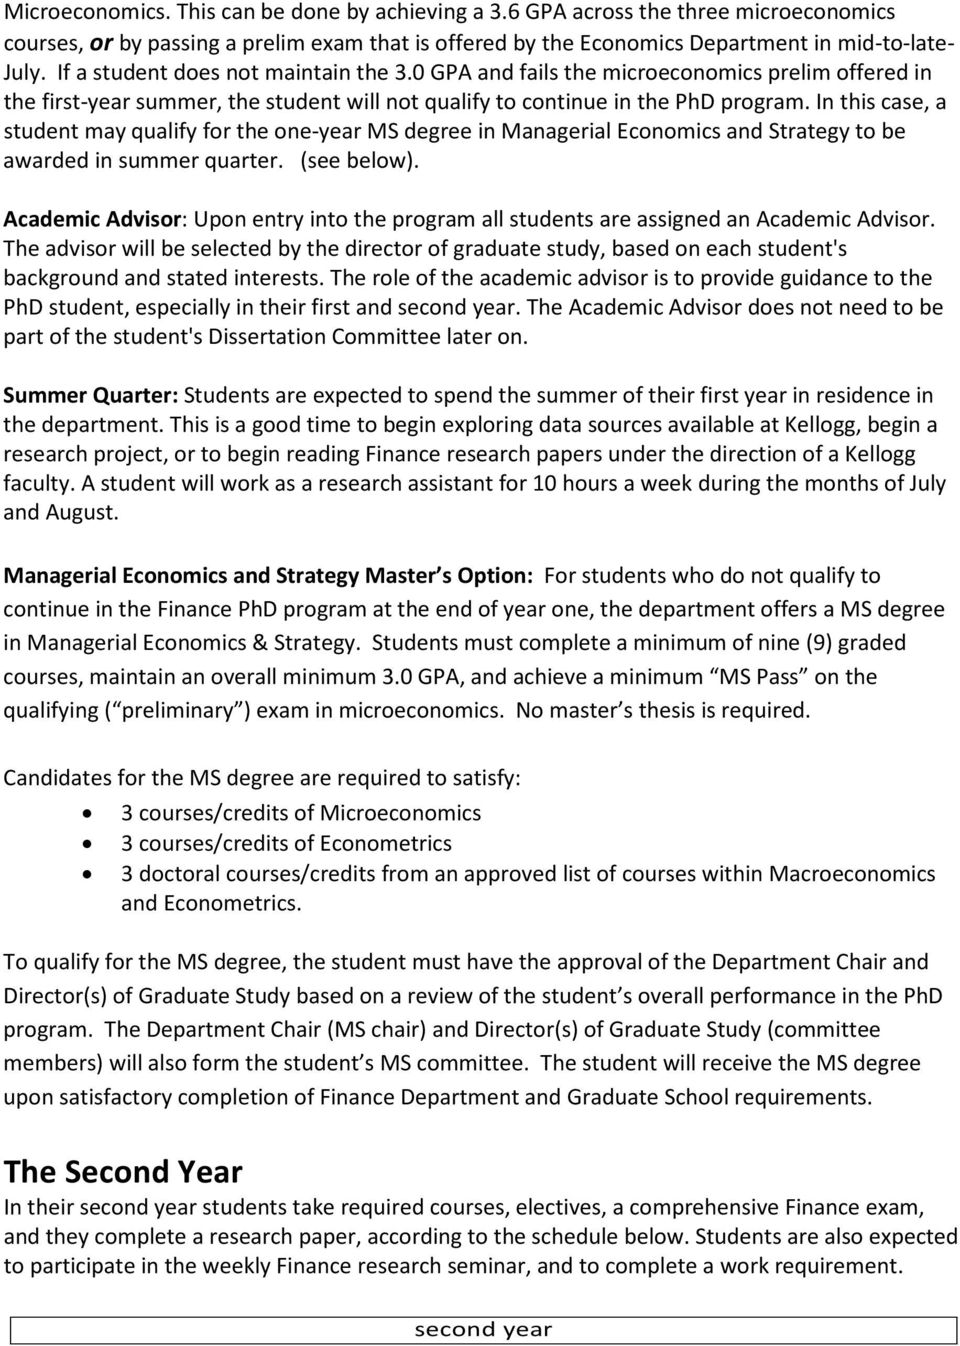 In this case, a student may qualify for the one-year MS degree in Managerial Economics and Strategy to be awarded in summer quarter. (see below).